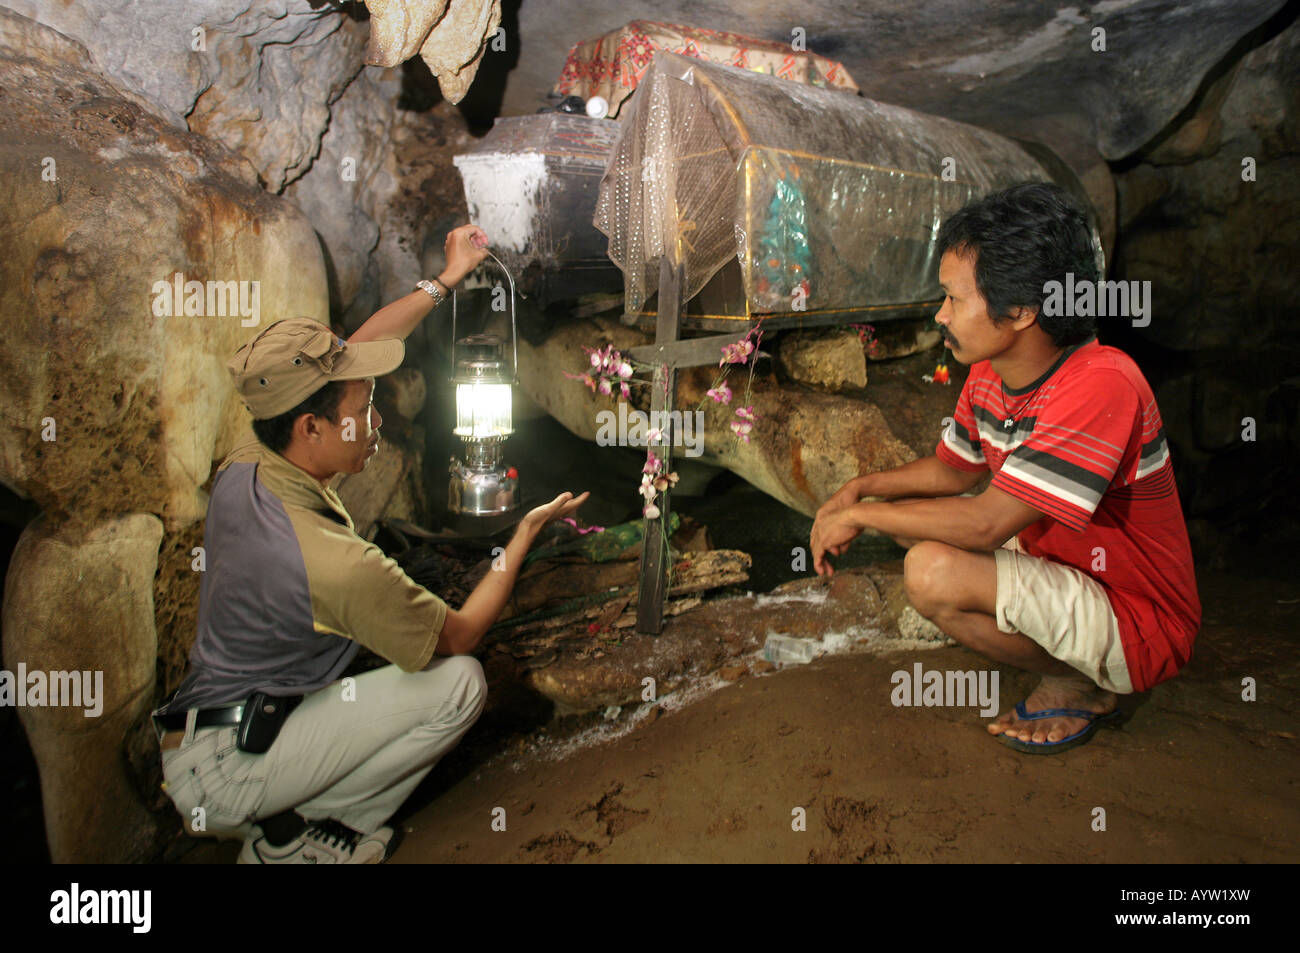 Indonesia: Coffins in a burial chamber of the caves graves in Londa, Sulawesi Island - Stock Image